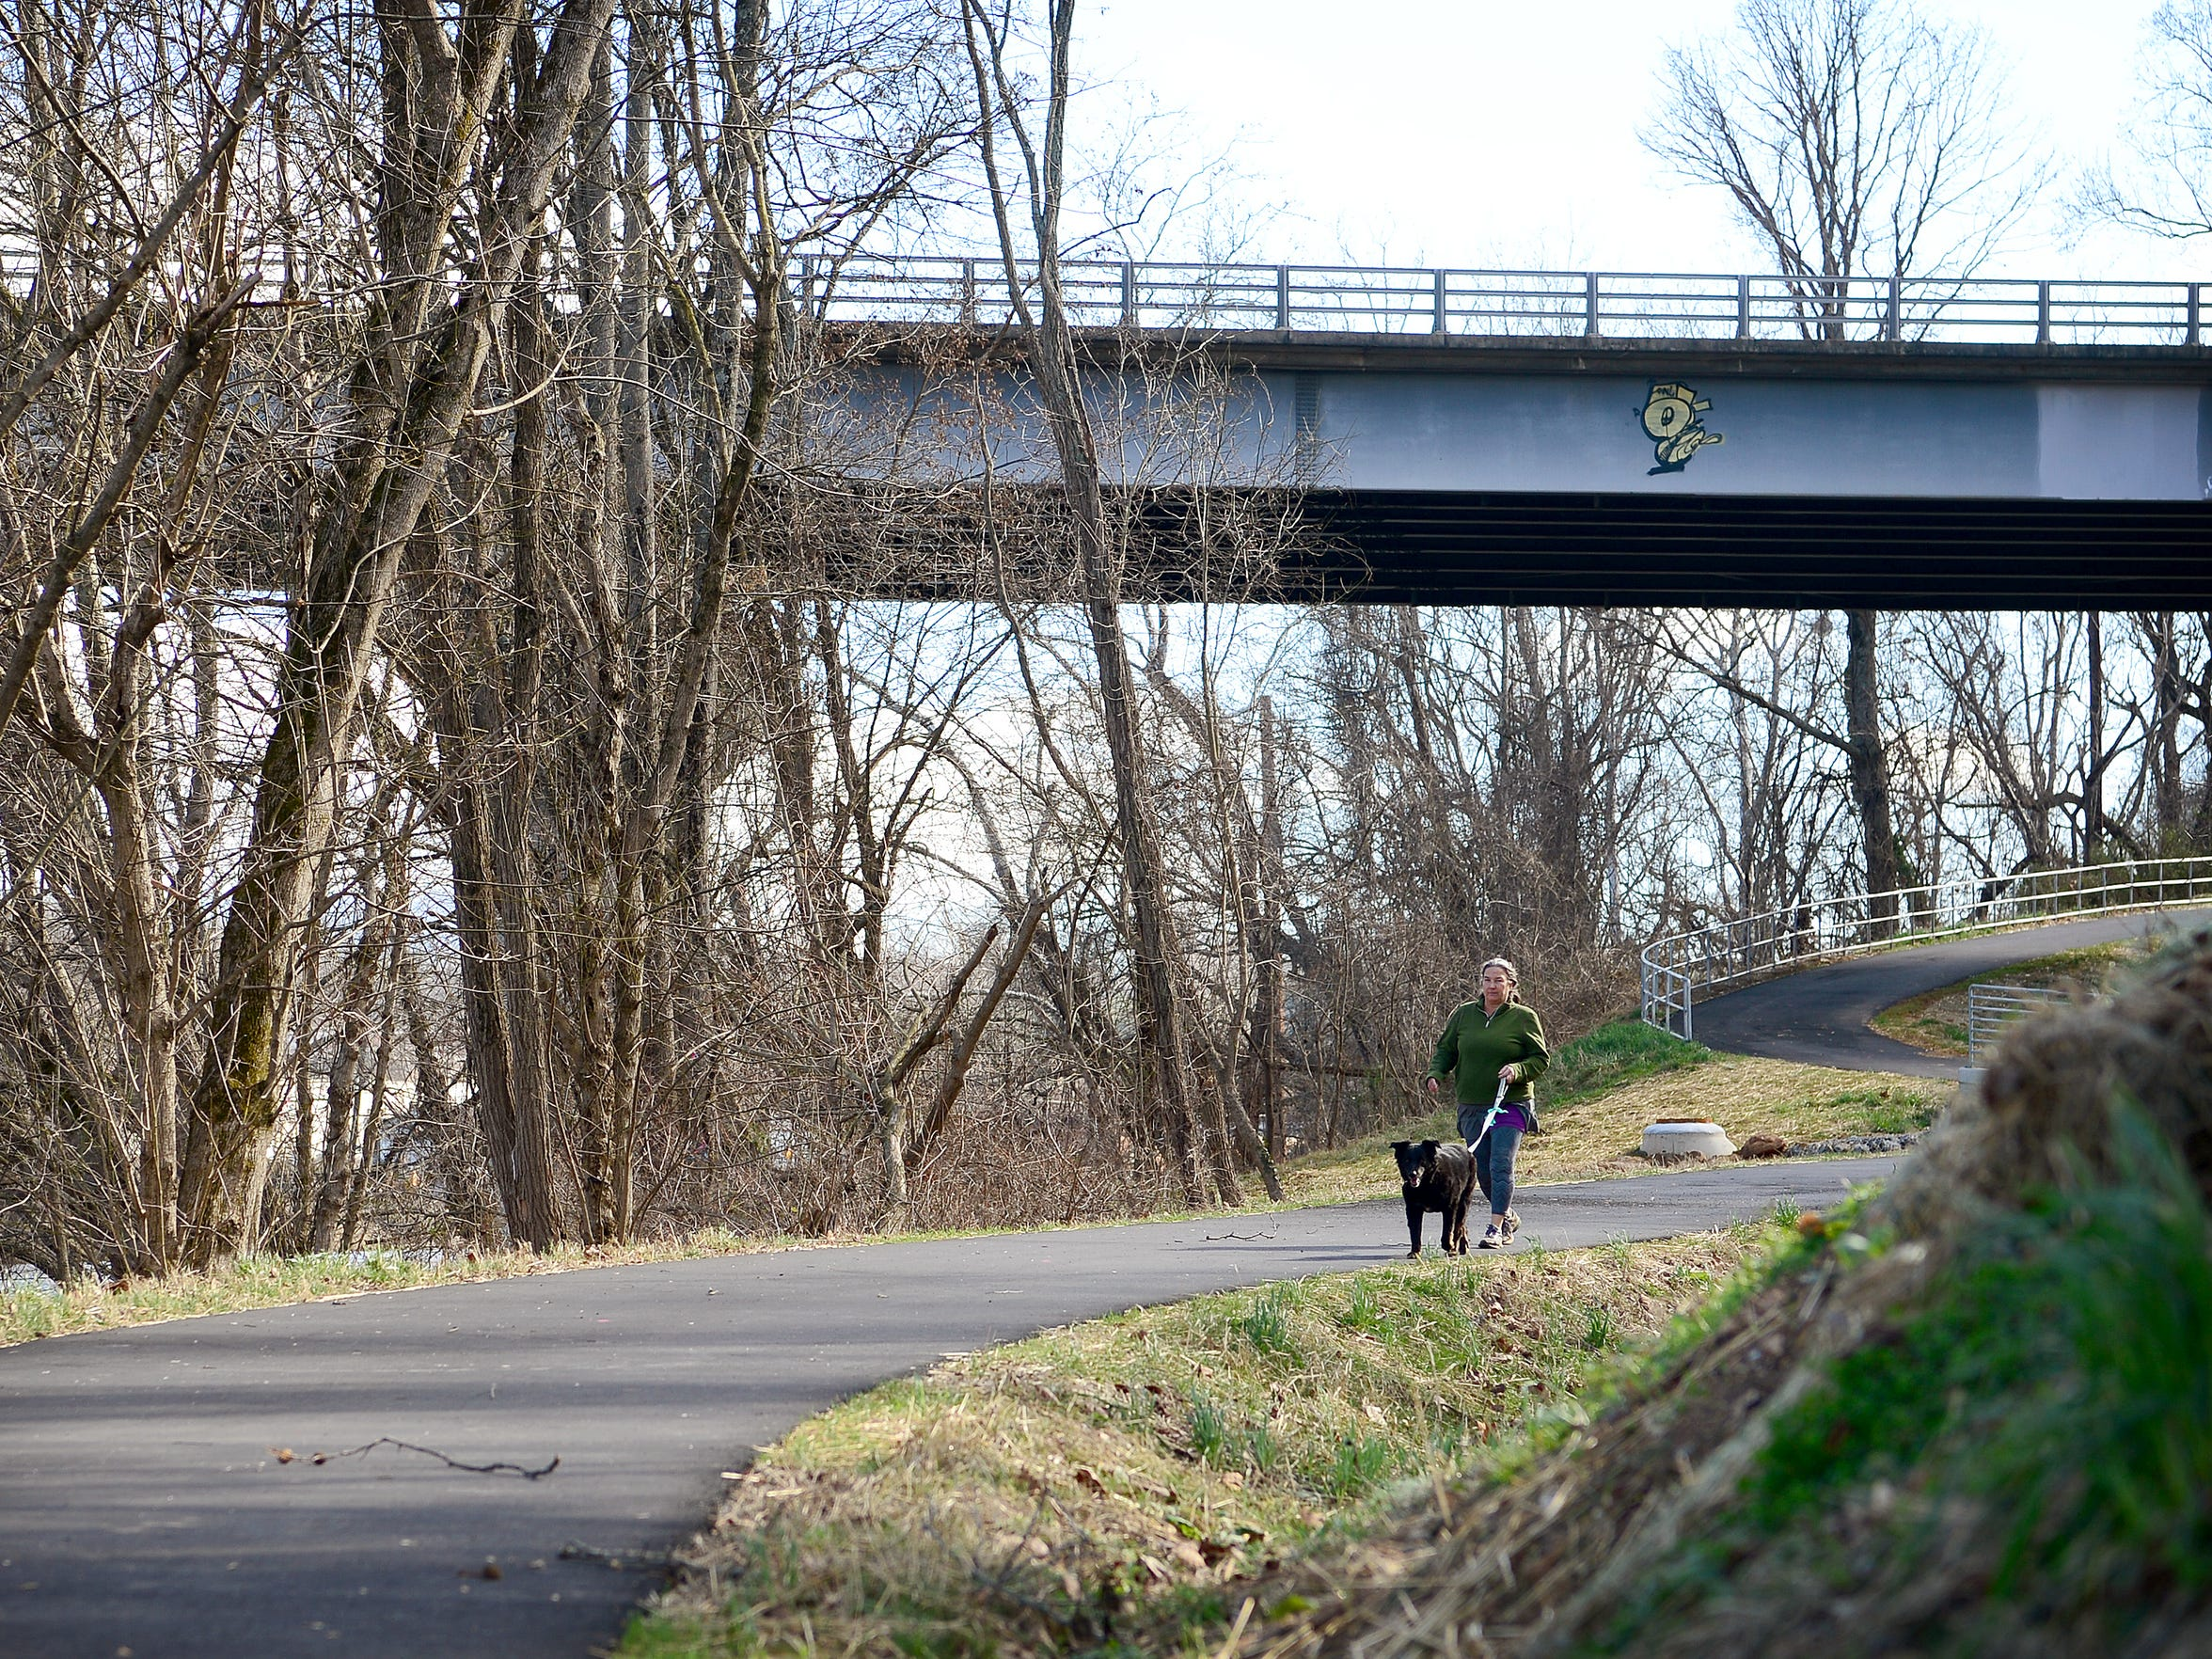 Sarah Walker walks her dog, Augie, on Jan. 24 on the new section of the French Broad River Greenway, which runs from Haywood Road to Craven Street.